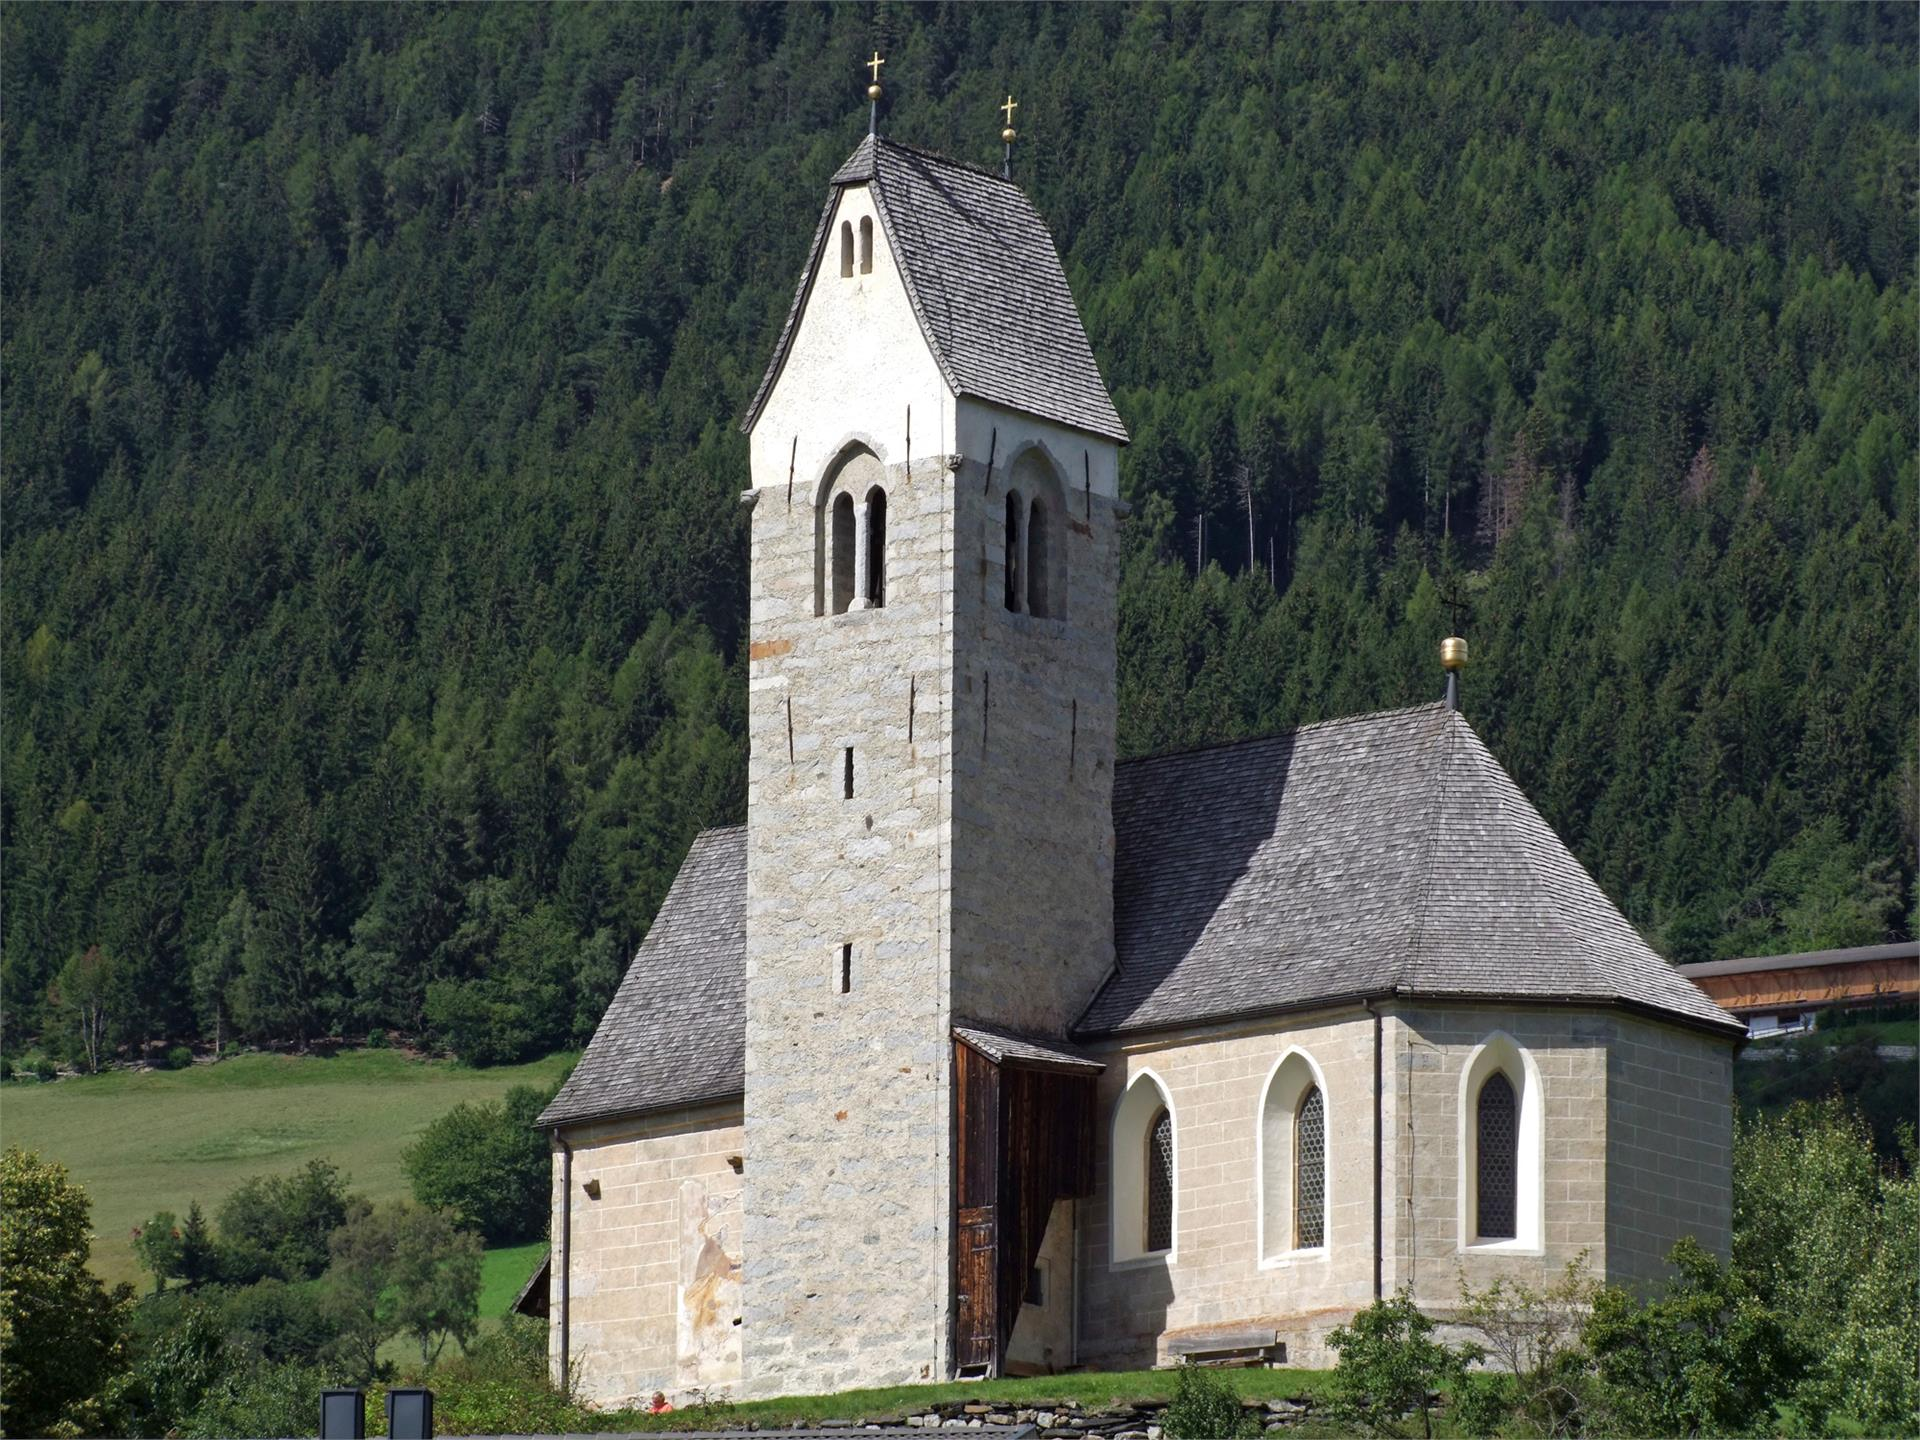 Church St. Georg in Snodres/Schnauders